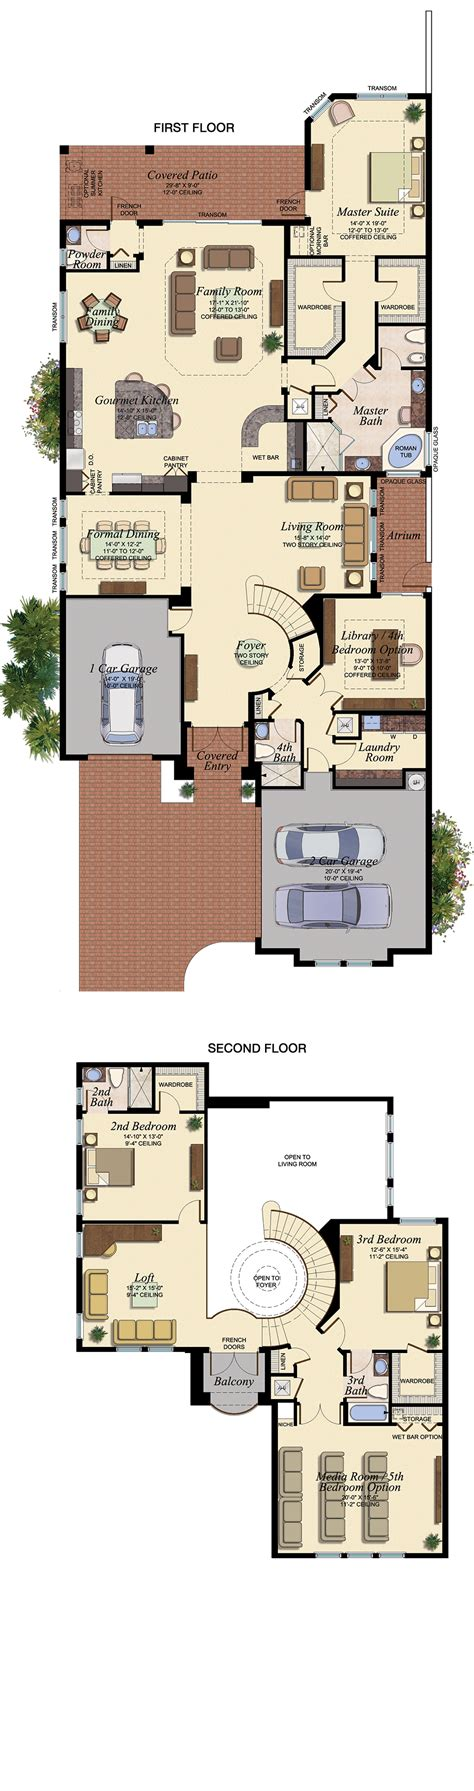 vizcaya floor plan glhomes vizcaya at seven bridges